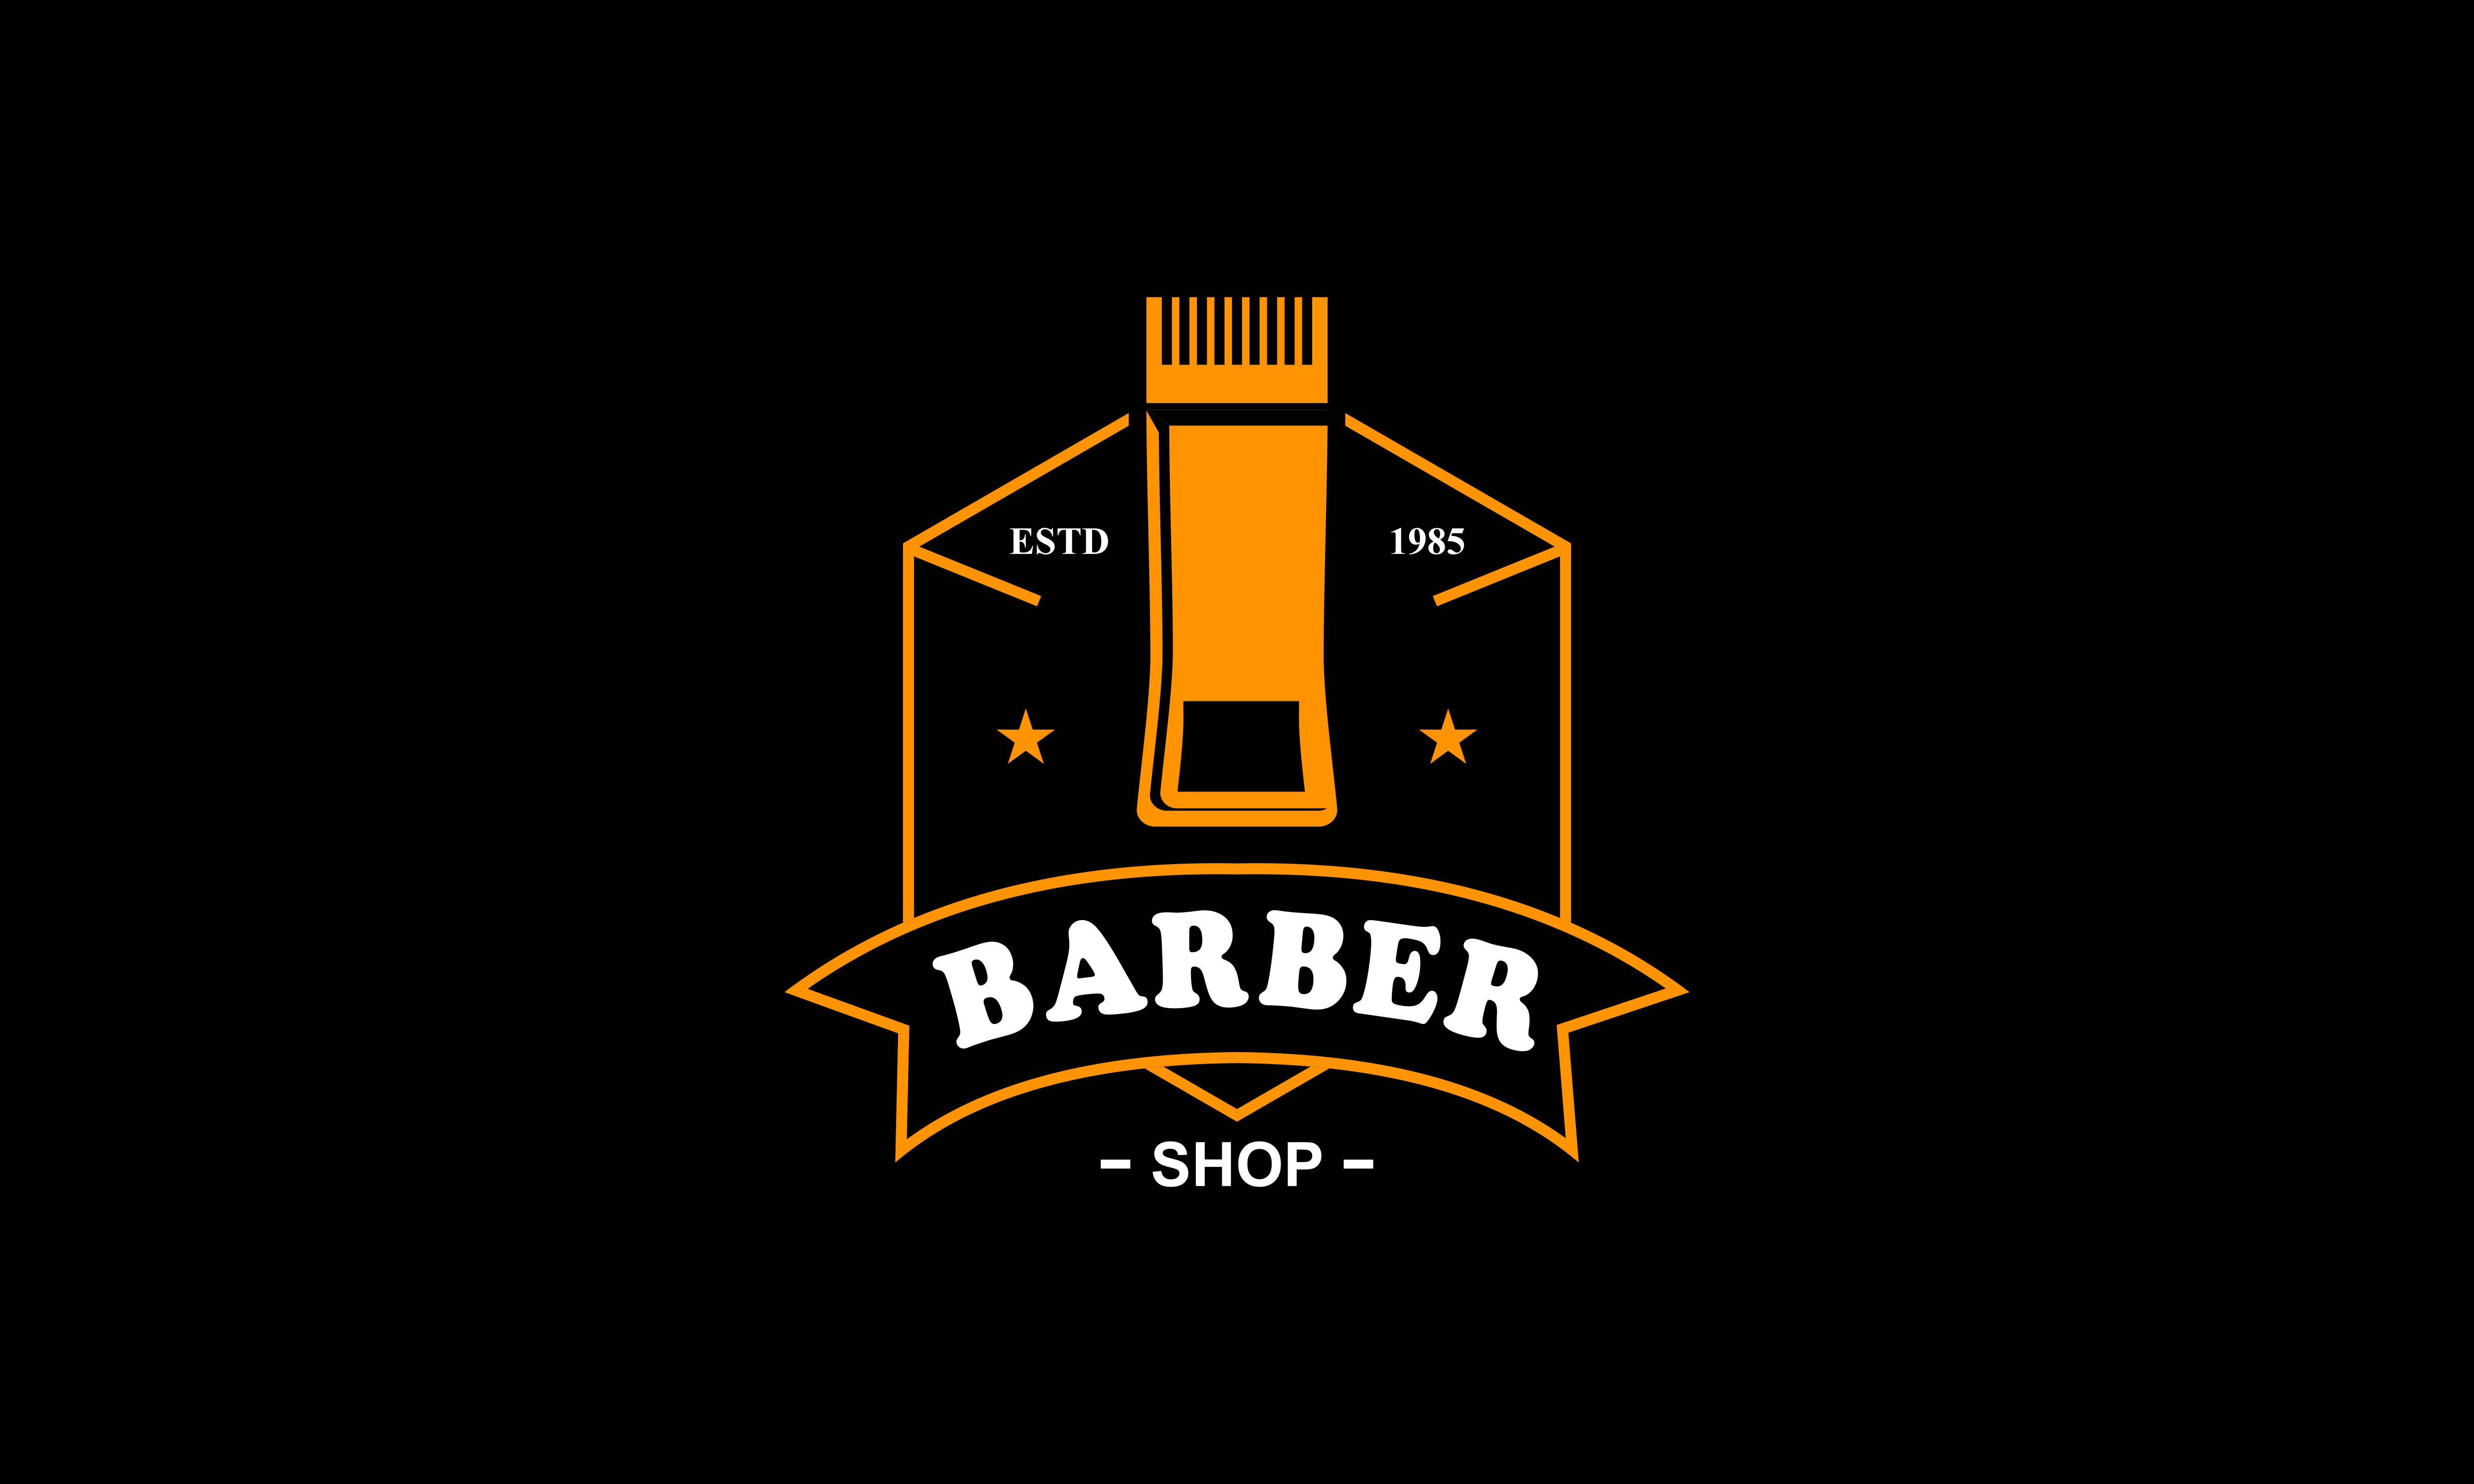 Download Free Barber Shop Vector Vintage Logo Label Graphic By Deemka Studio for Cricut Explore, Silhouette and other cutting machines.